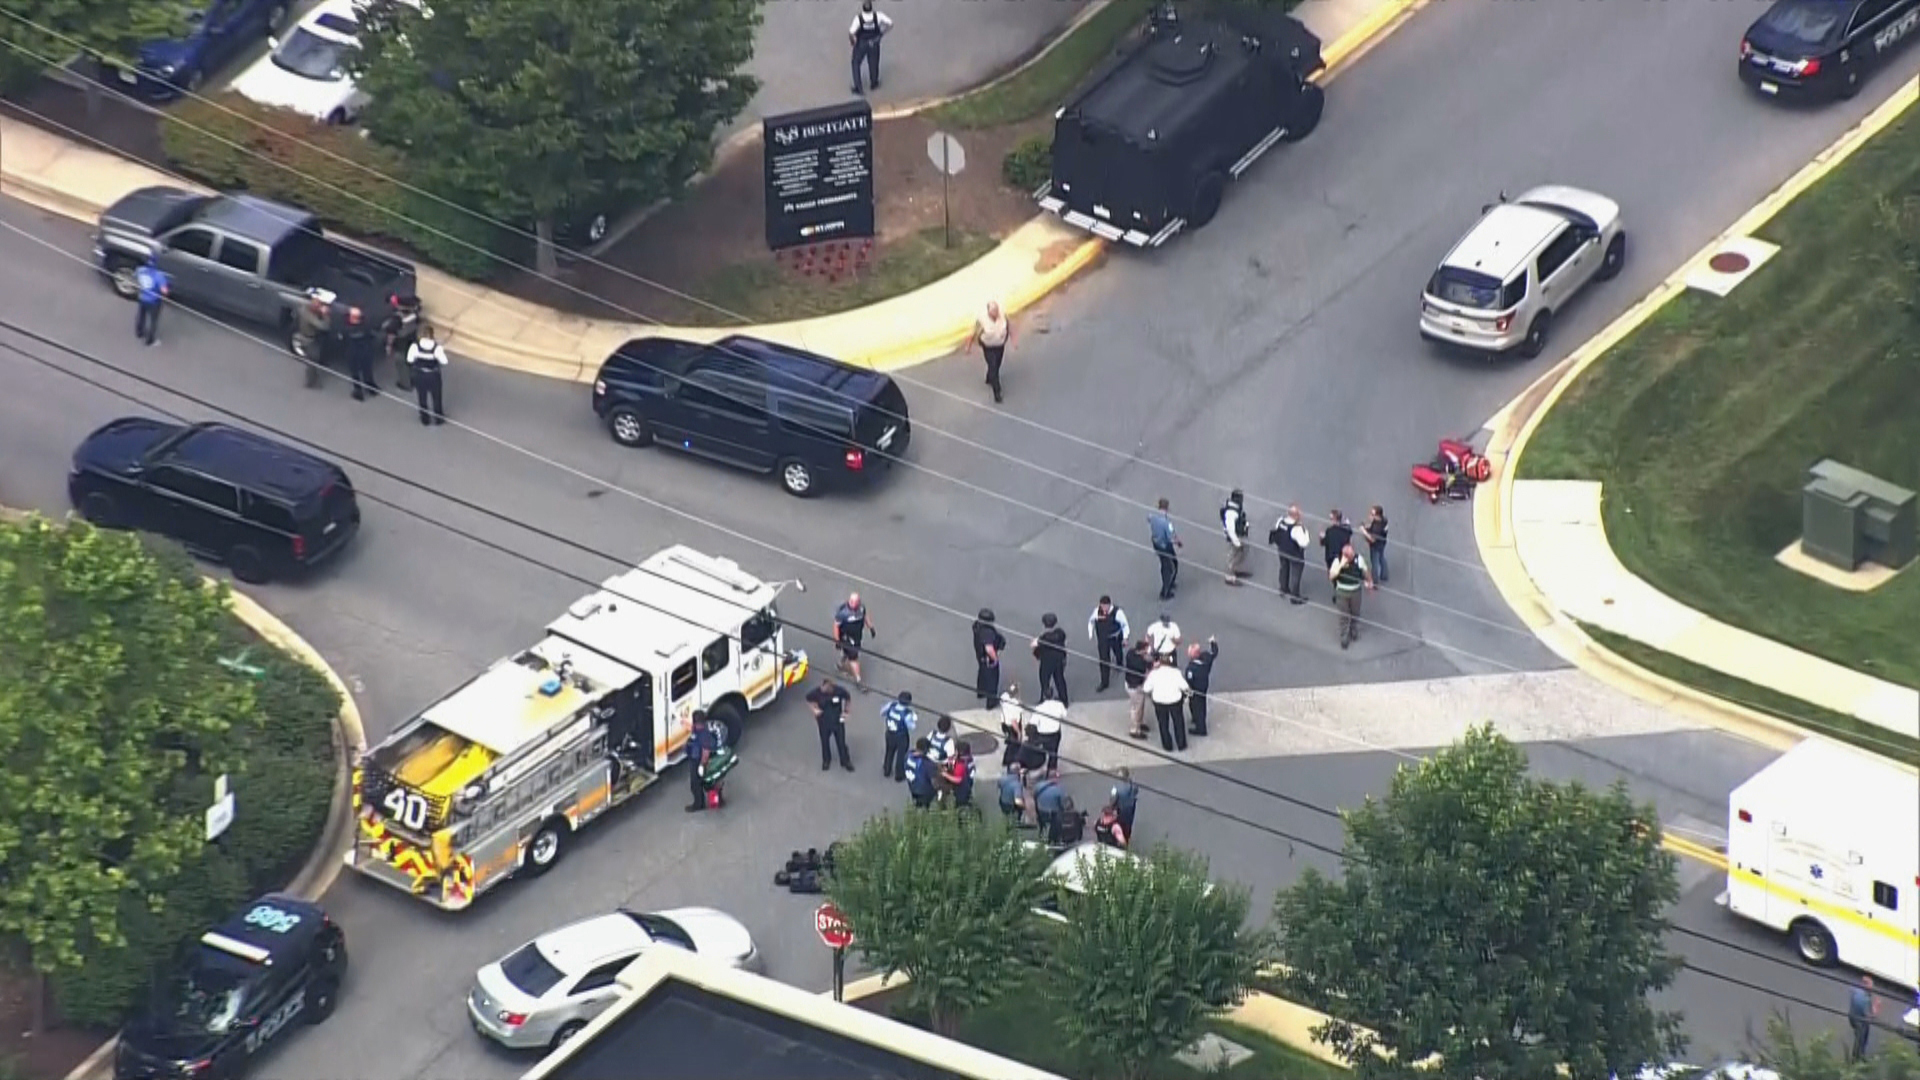 Capital-Gazette Shooting  in Annapolis